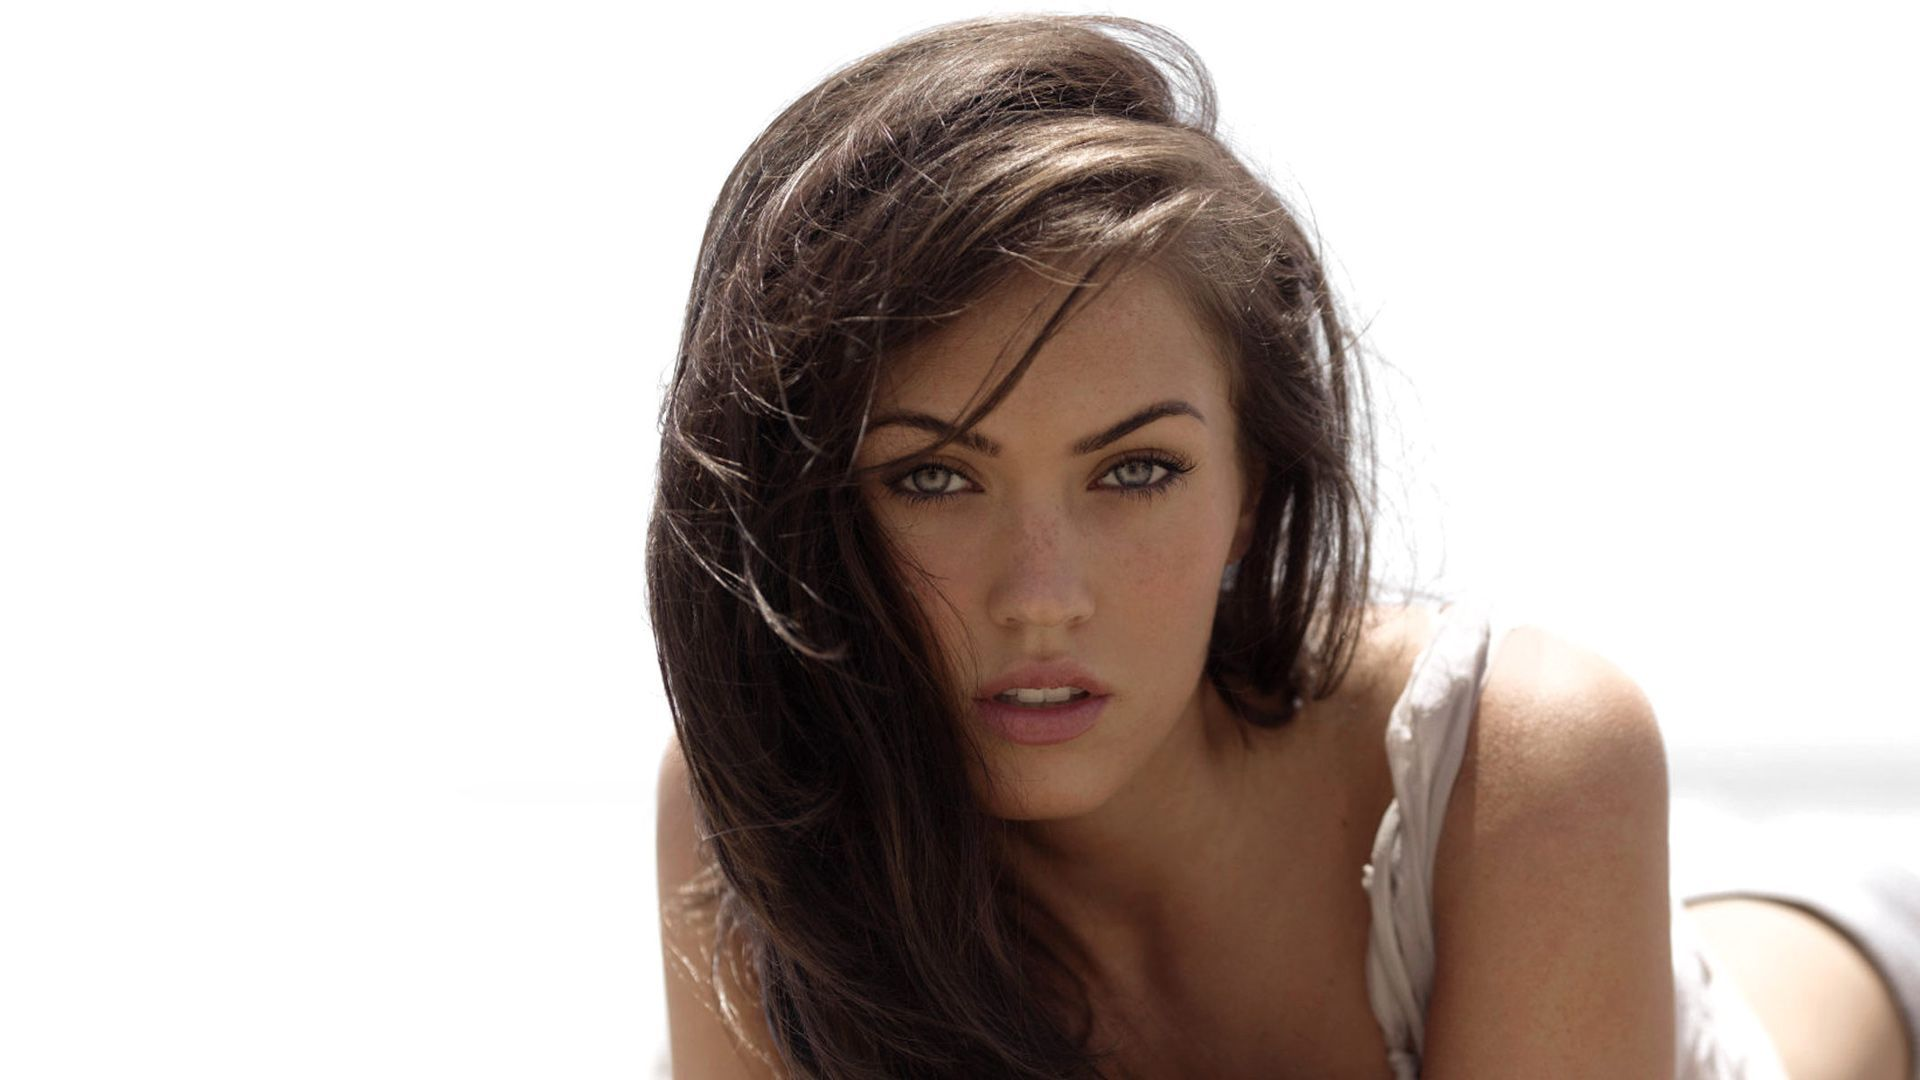 megan fox wallpapers hd wallpaper 1920x1080